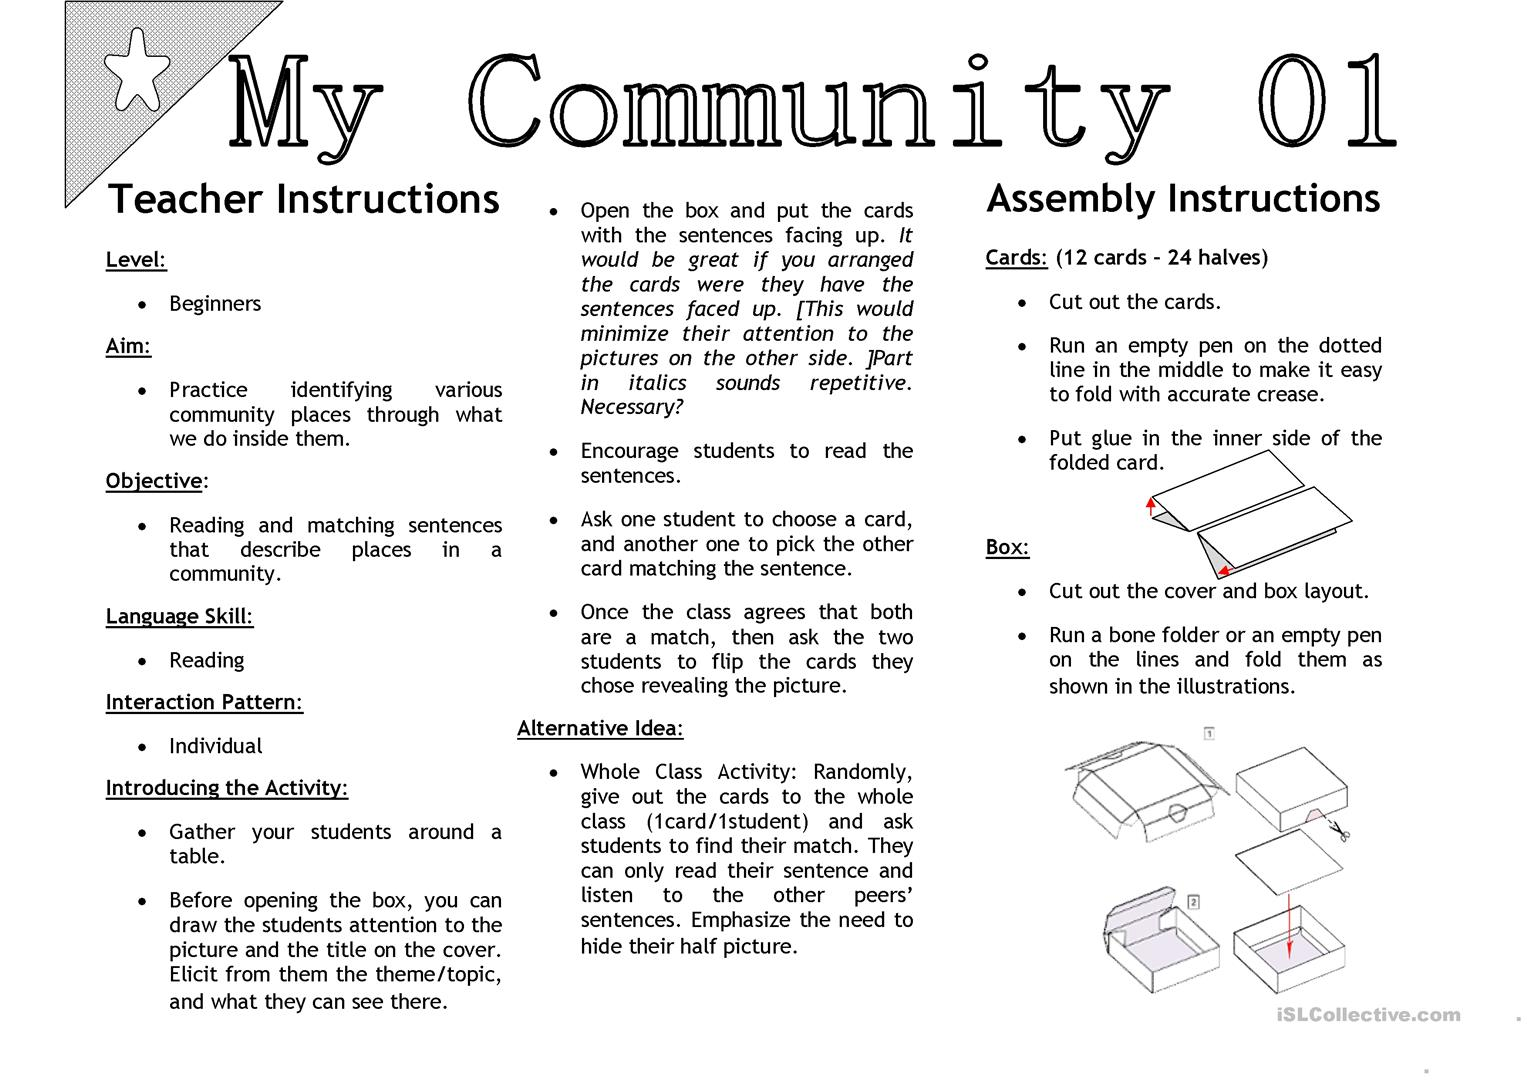 My Community 01 Sentenc Matching Activity Cards